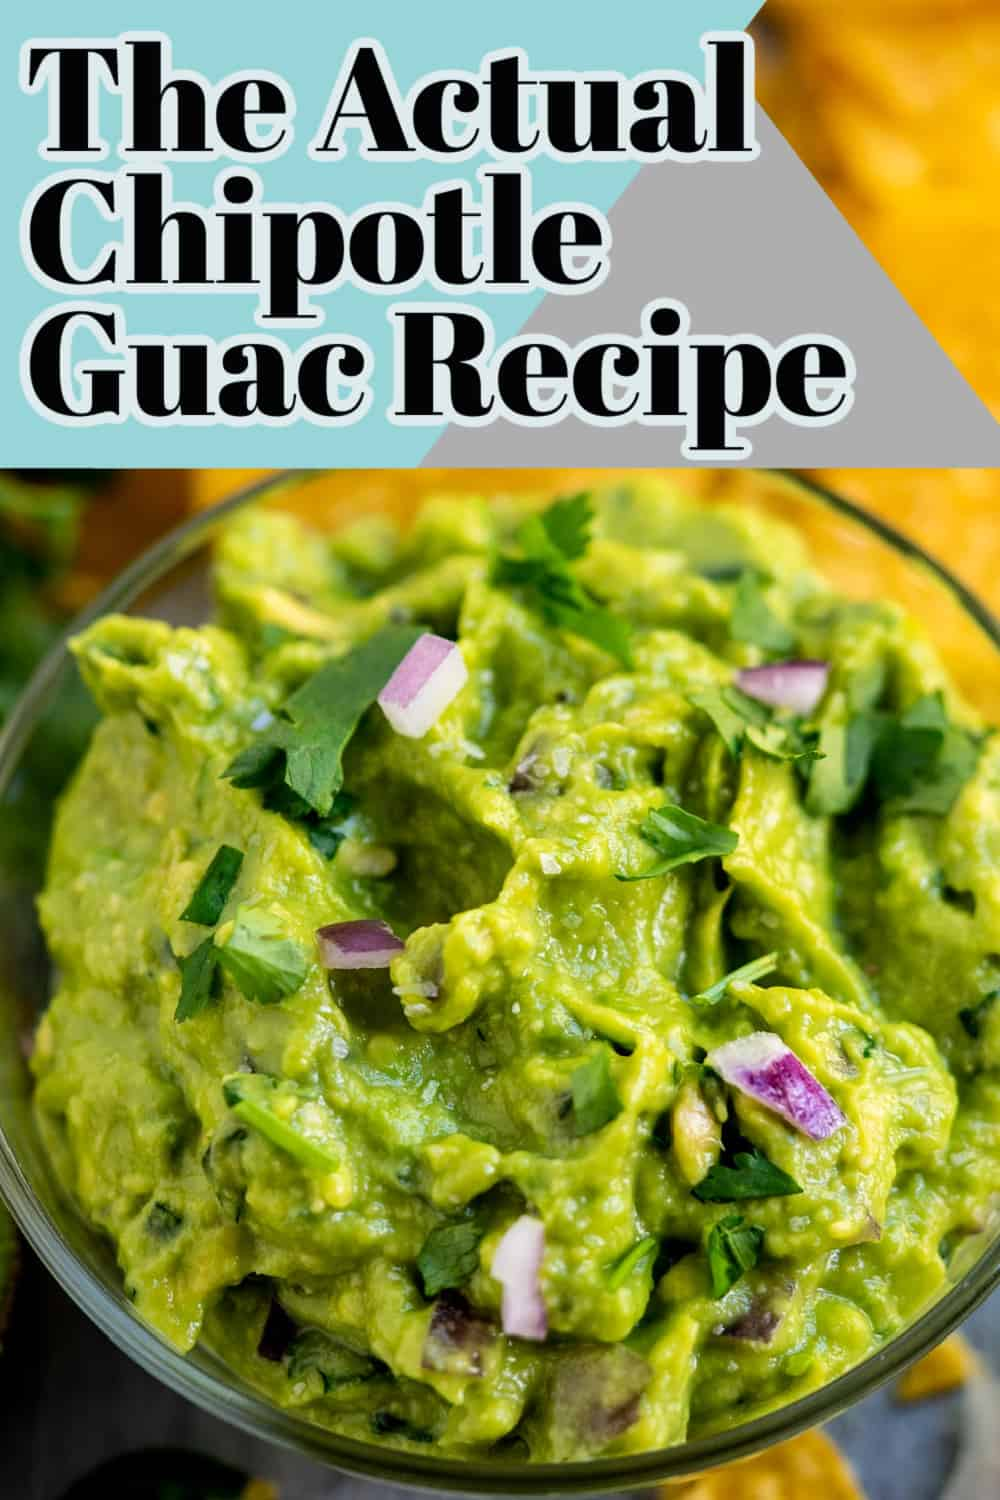 The famed guacamole recipe from Chipotle! This smooth guacamole recipe is the same recipe Chipotle uses! They shared it a few years ago and I've been hanging onto it ever since! Save this restaurant-style guacamole recipe! via @hlikesfood